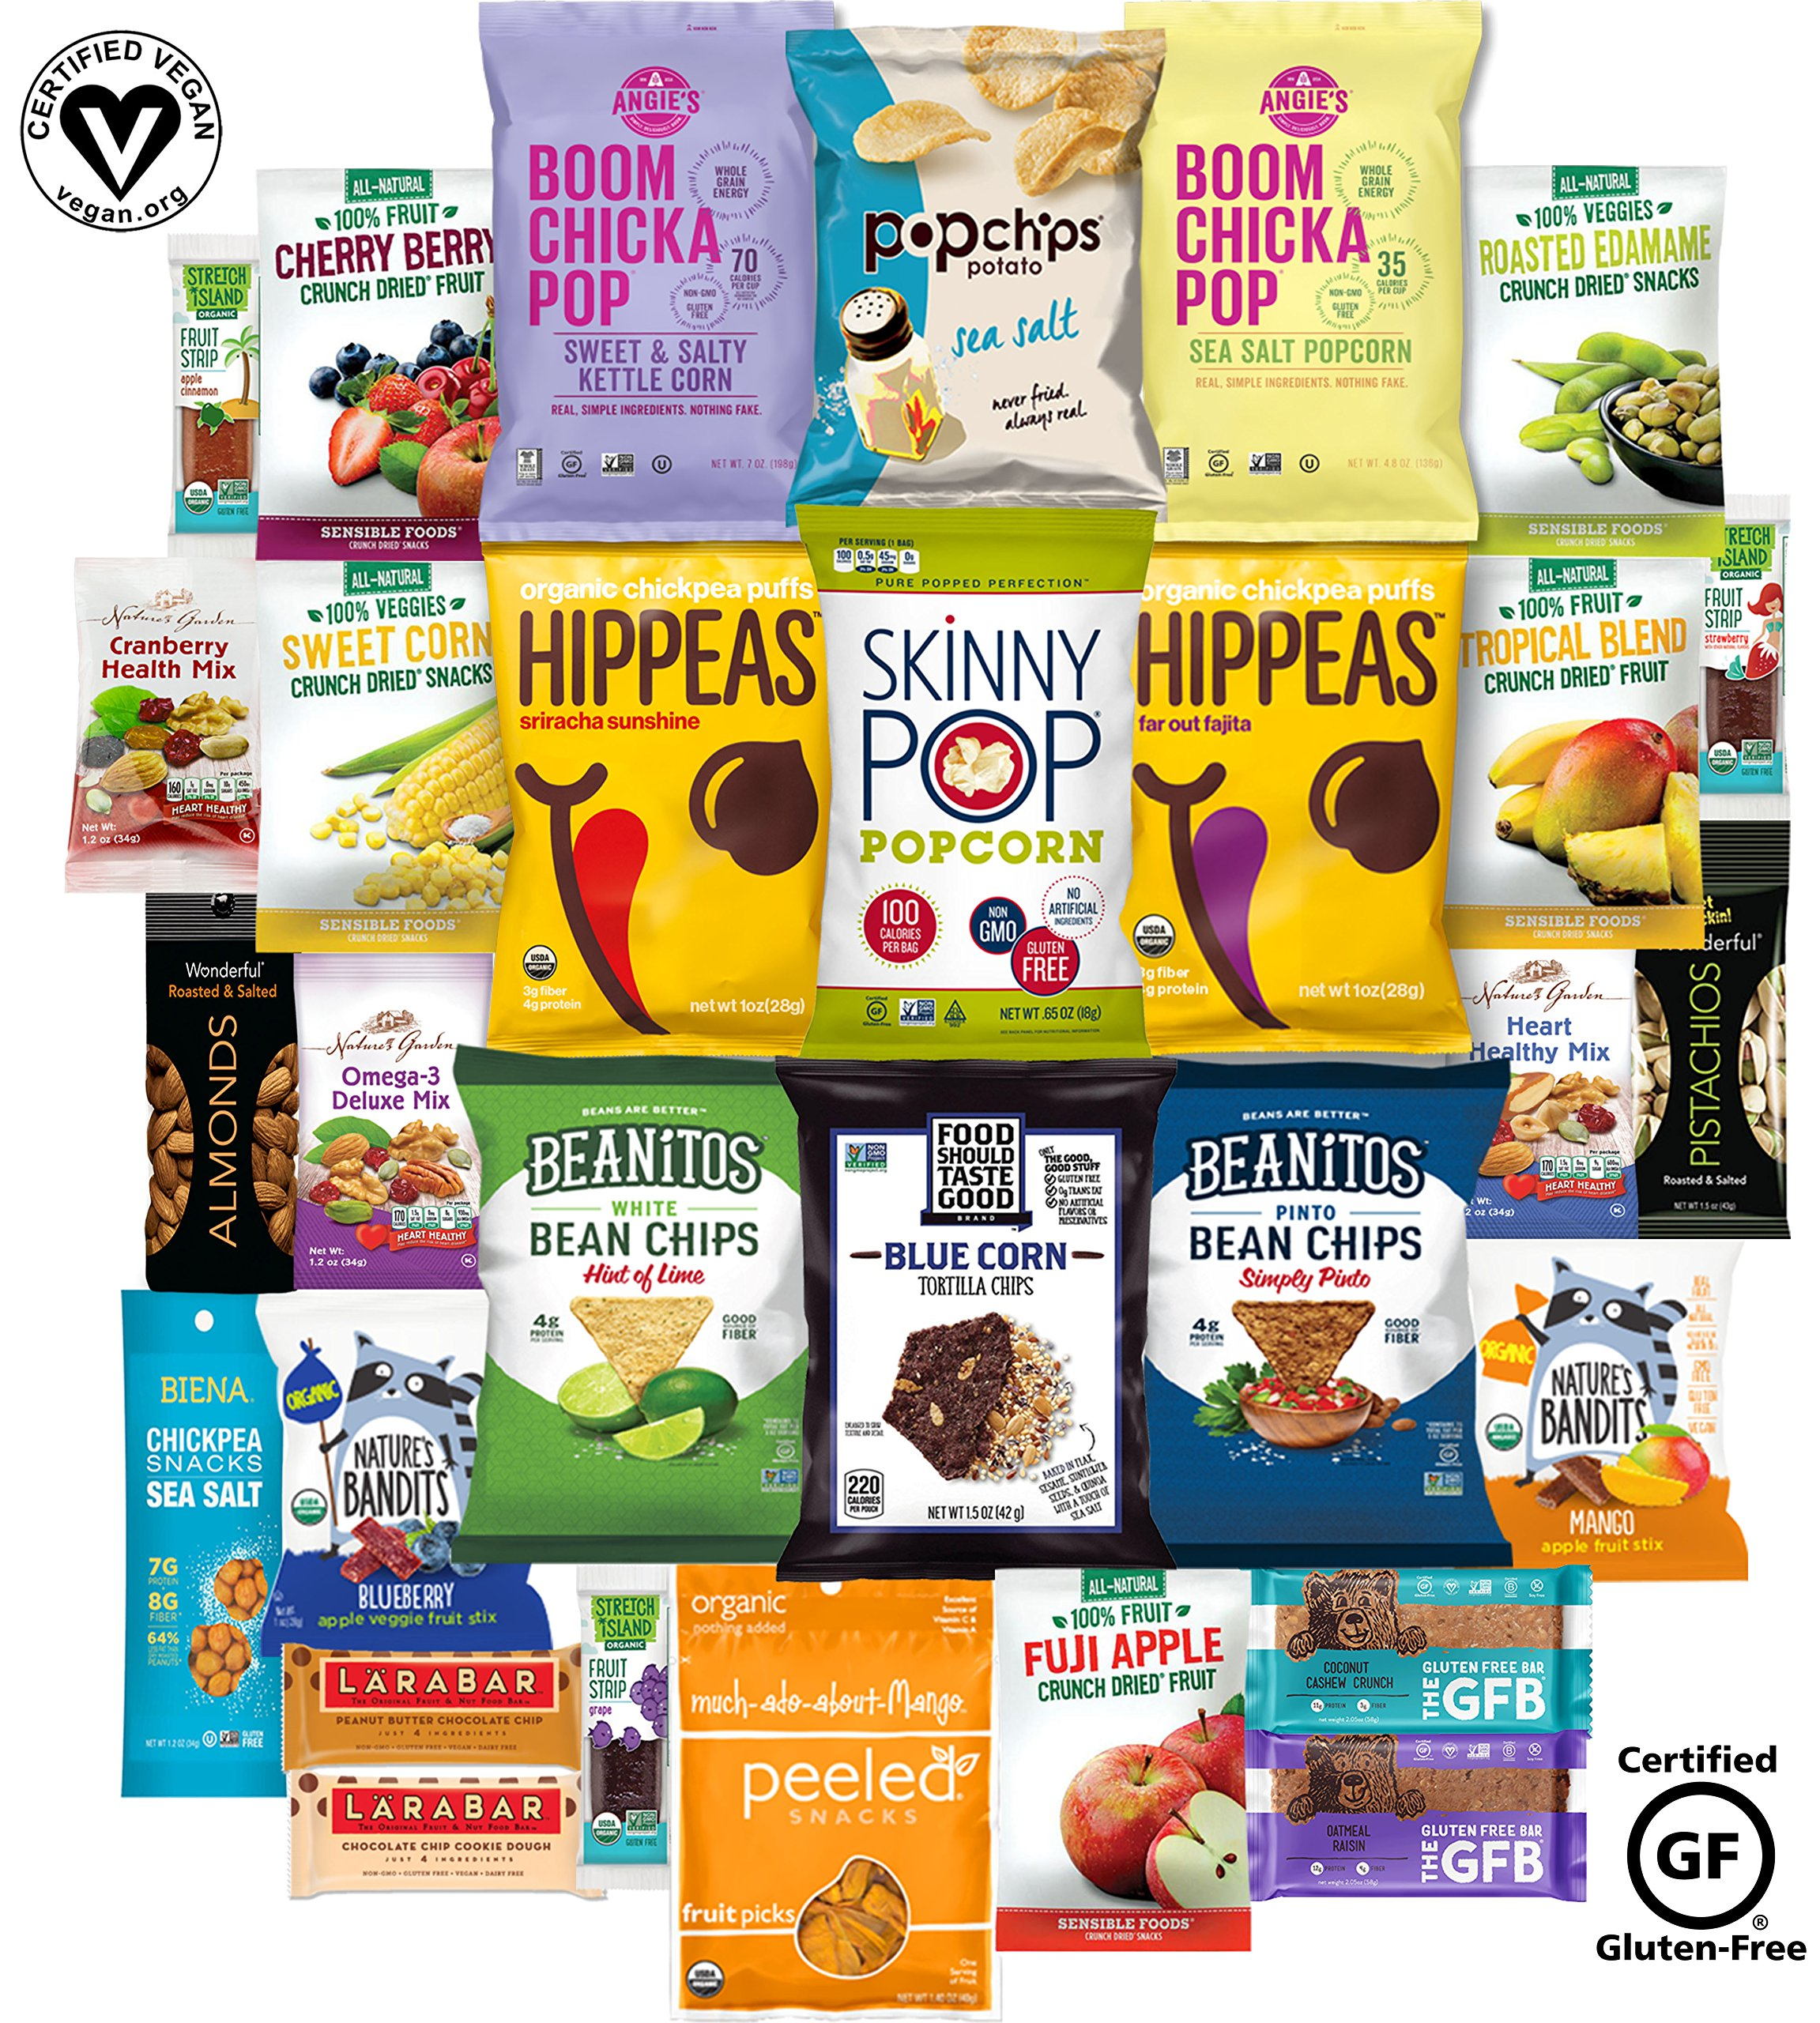 Healthy Vegan Snacks Care Package (30 Count) - Mixed Premium Variety Pack - Includes Chickpea Puffs, Popcorn, Chips, Trail Mix, Fruit, Health Bars - Multiple Flavors Fun Snack Gift Box